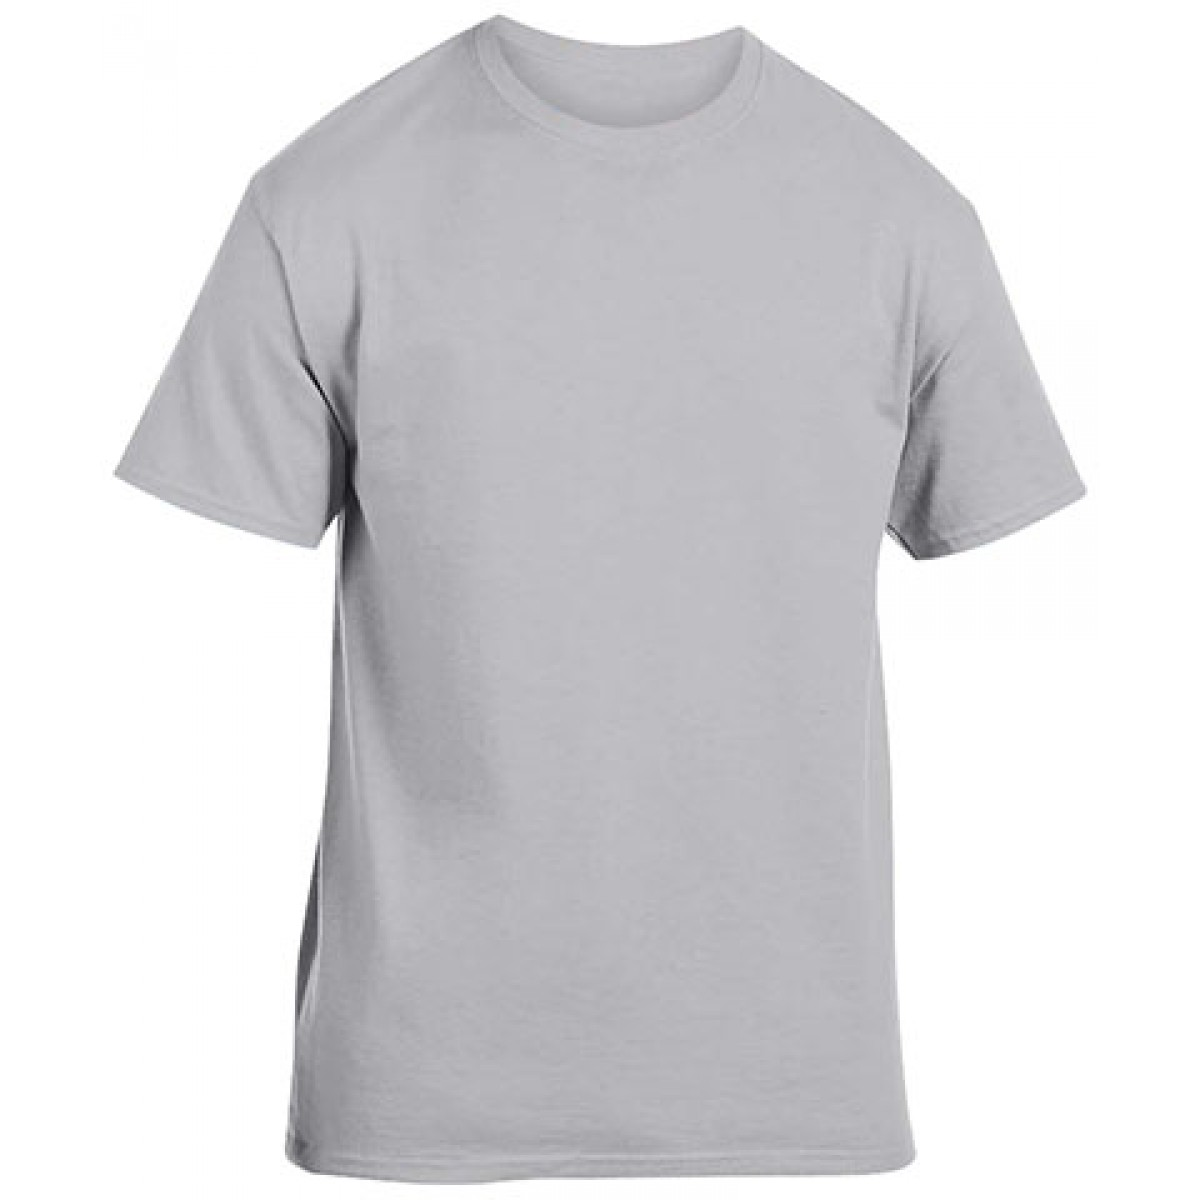 Cotton Short Sleeve T-Shirt-Gray-3XL